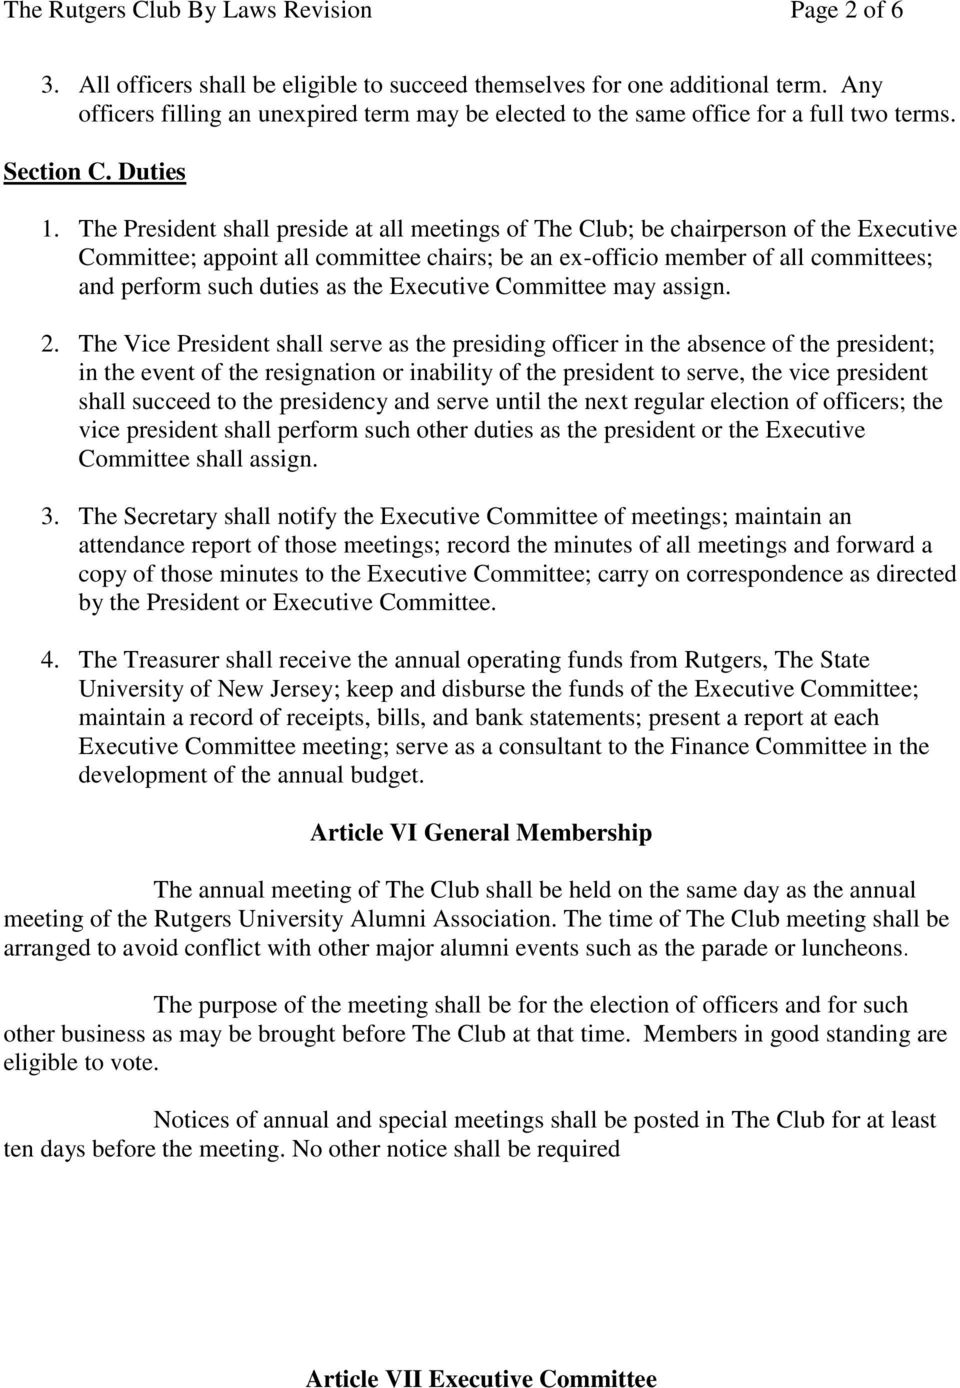 The President shall preside at all meetings of The Club; be chairperson of the Executive Committee; appoint all committee chairs; be an ex-officio member of all committees; and perform such duties as